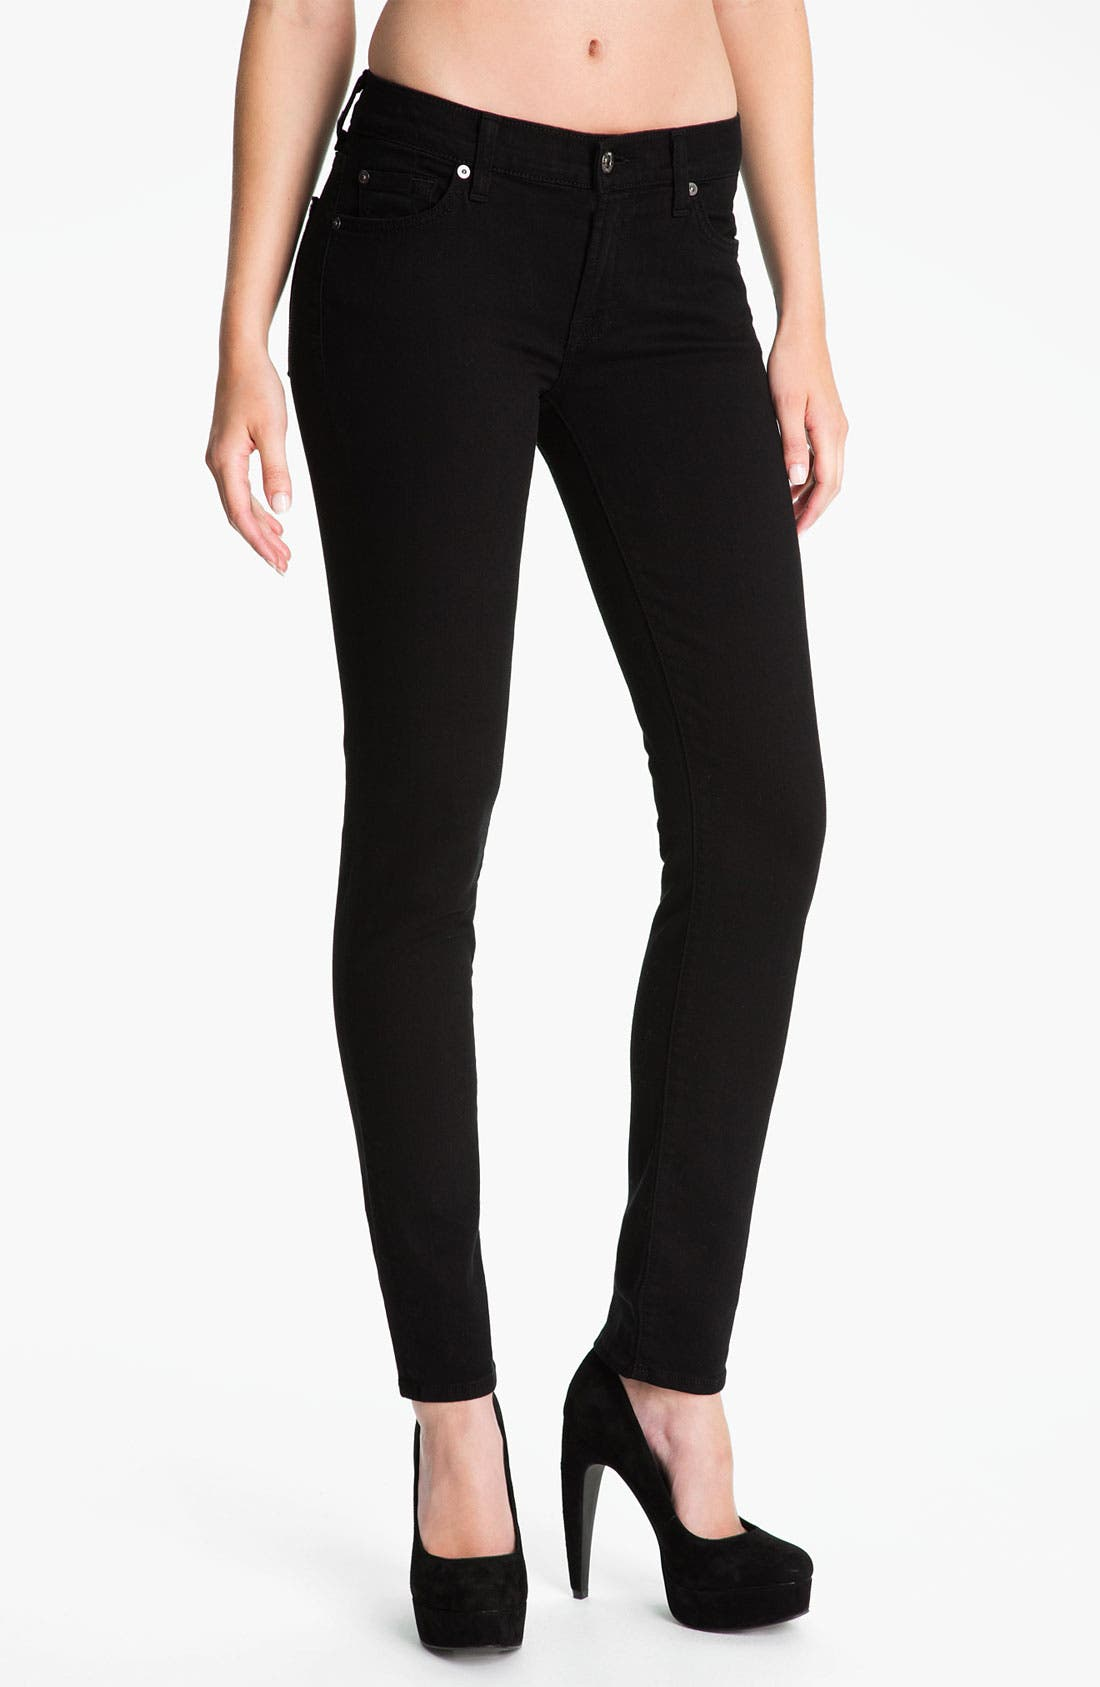 Alternate Image 1 Selected - 7 For All Mankind® 'The Slim Cigarette' Stretch Jeans (Black)